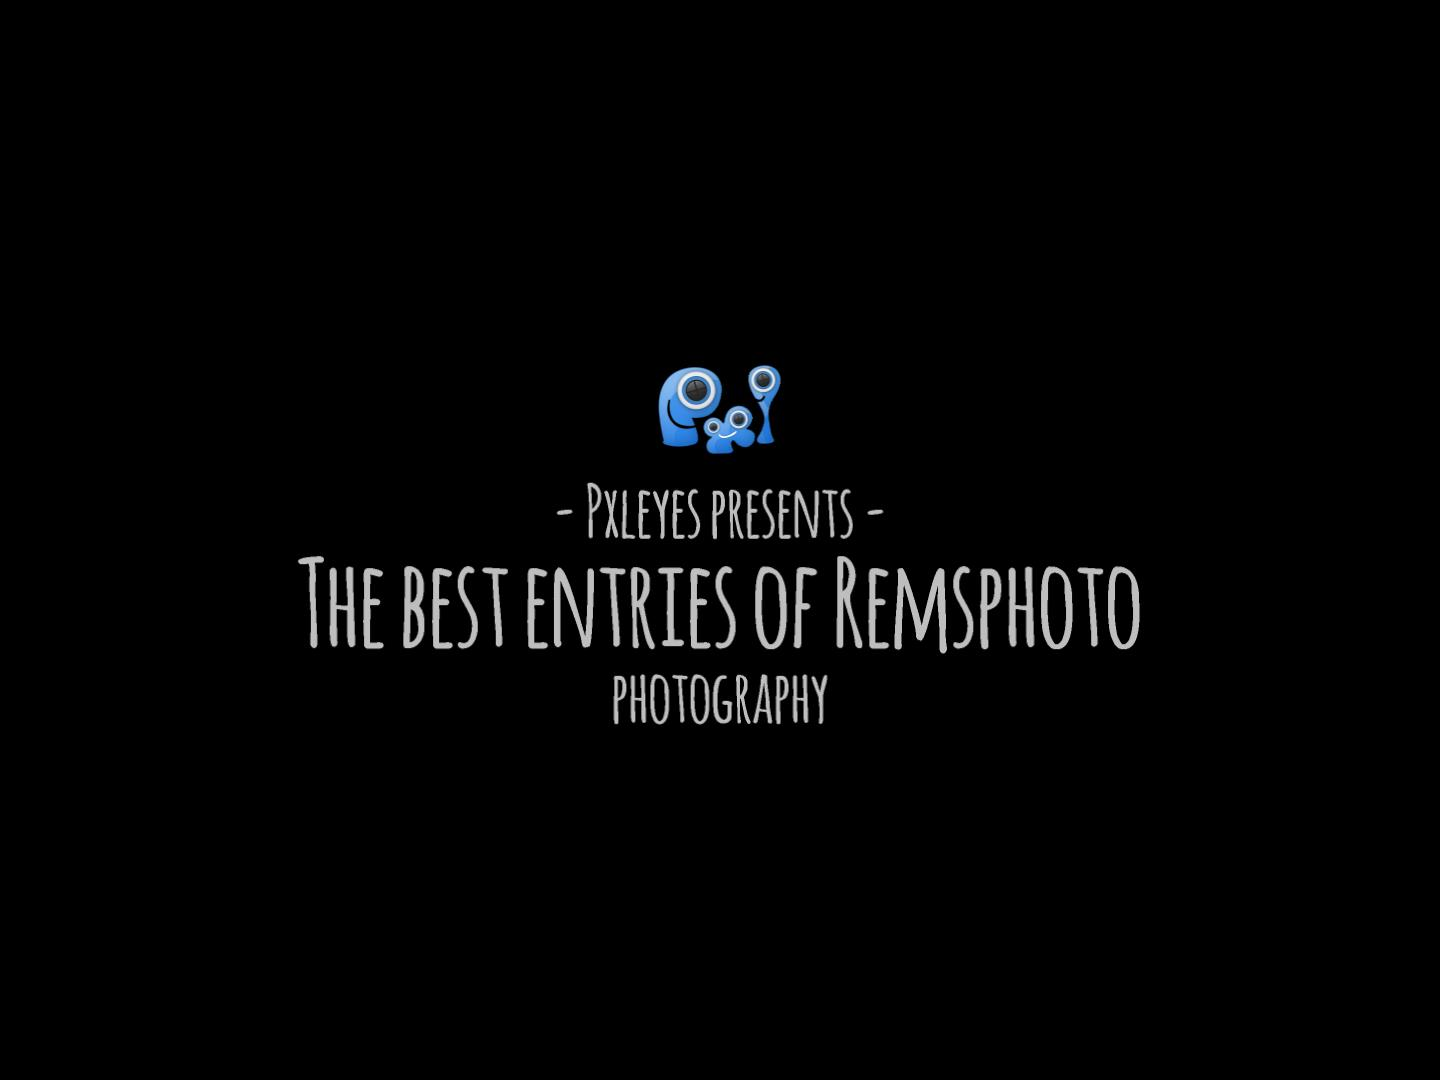 The best entries by Remsphoto